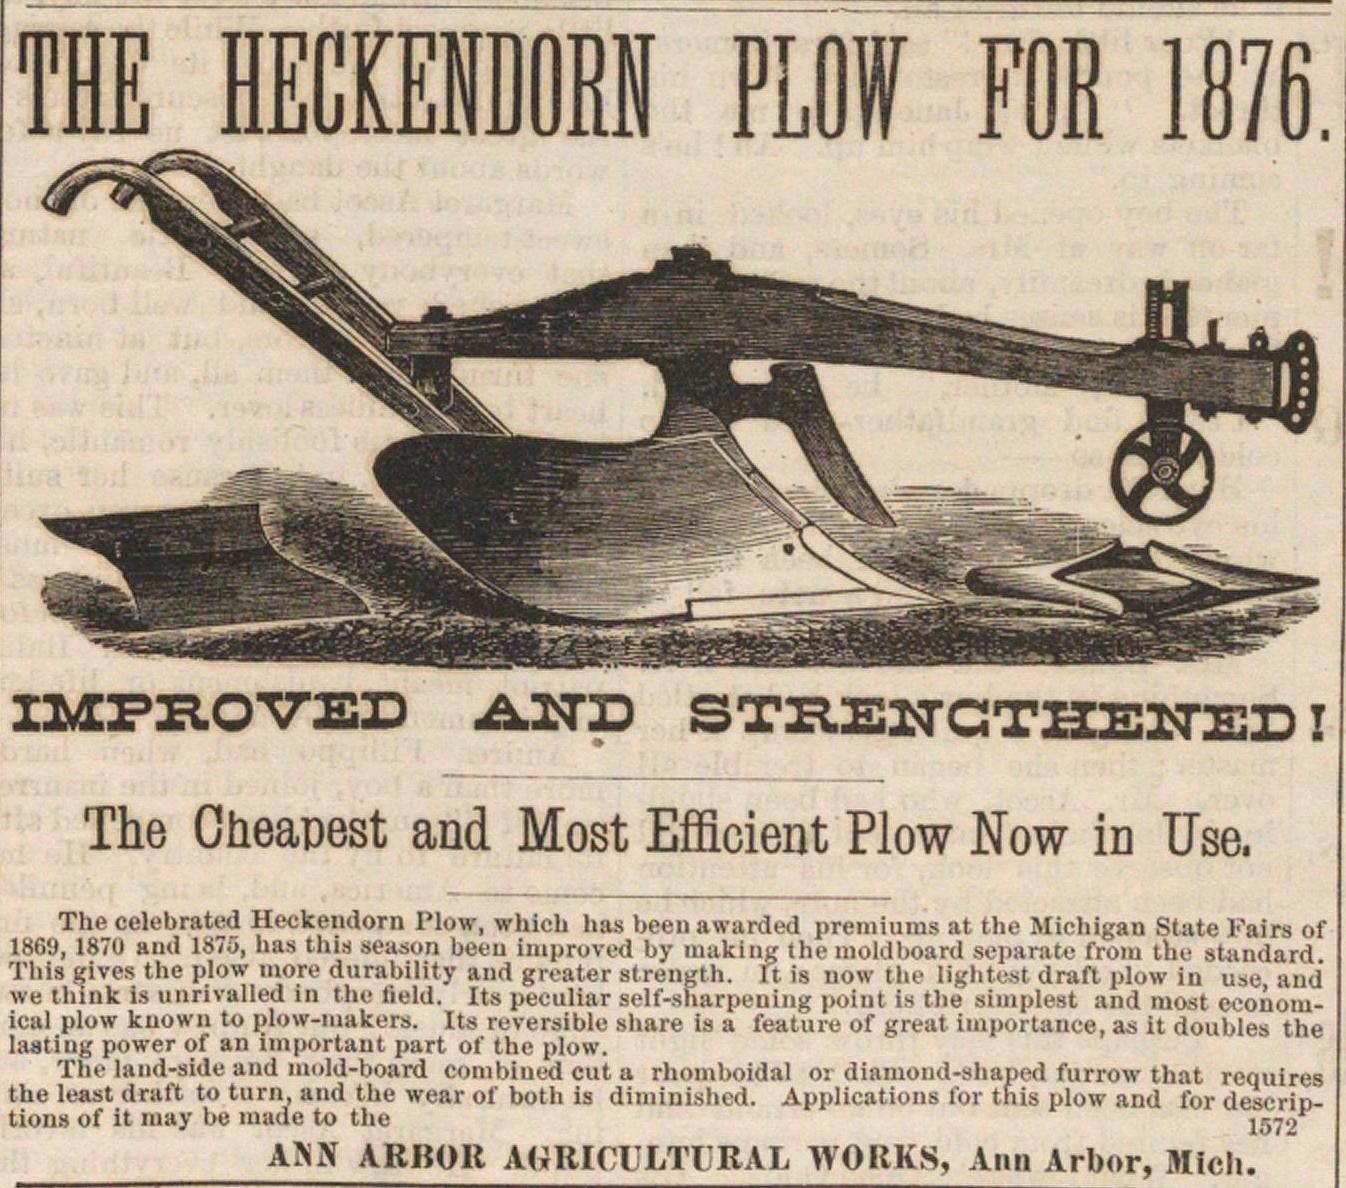 The Heckendorn Plow For 1876 image